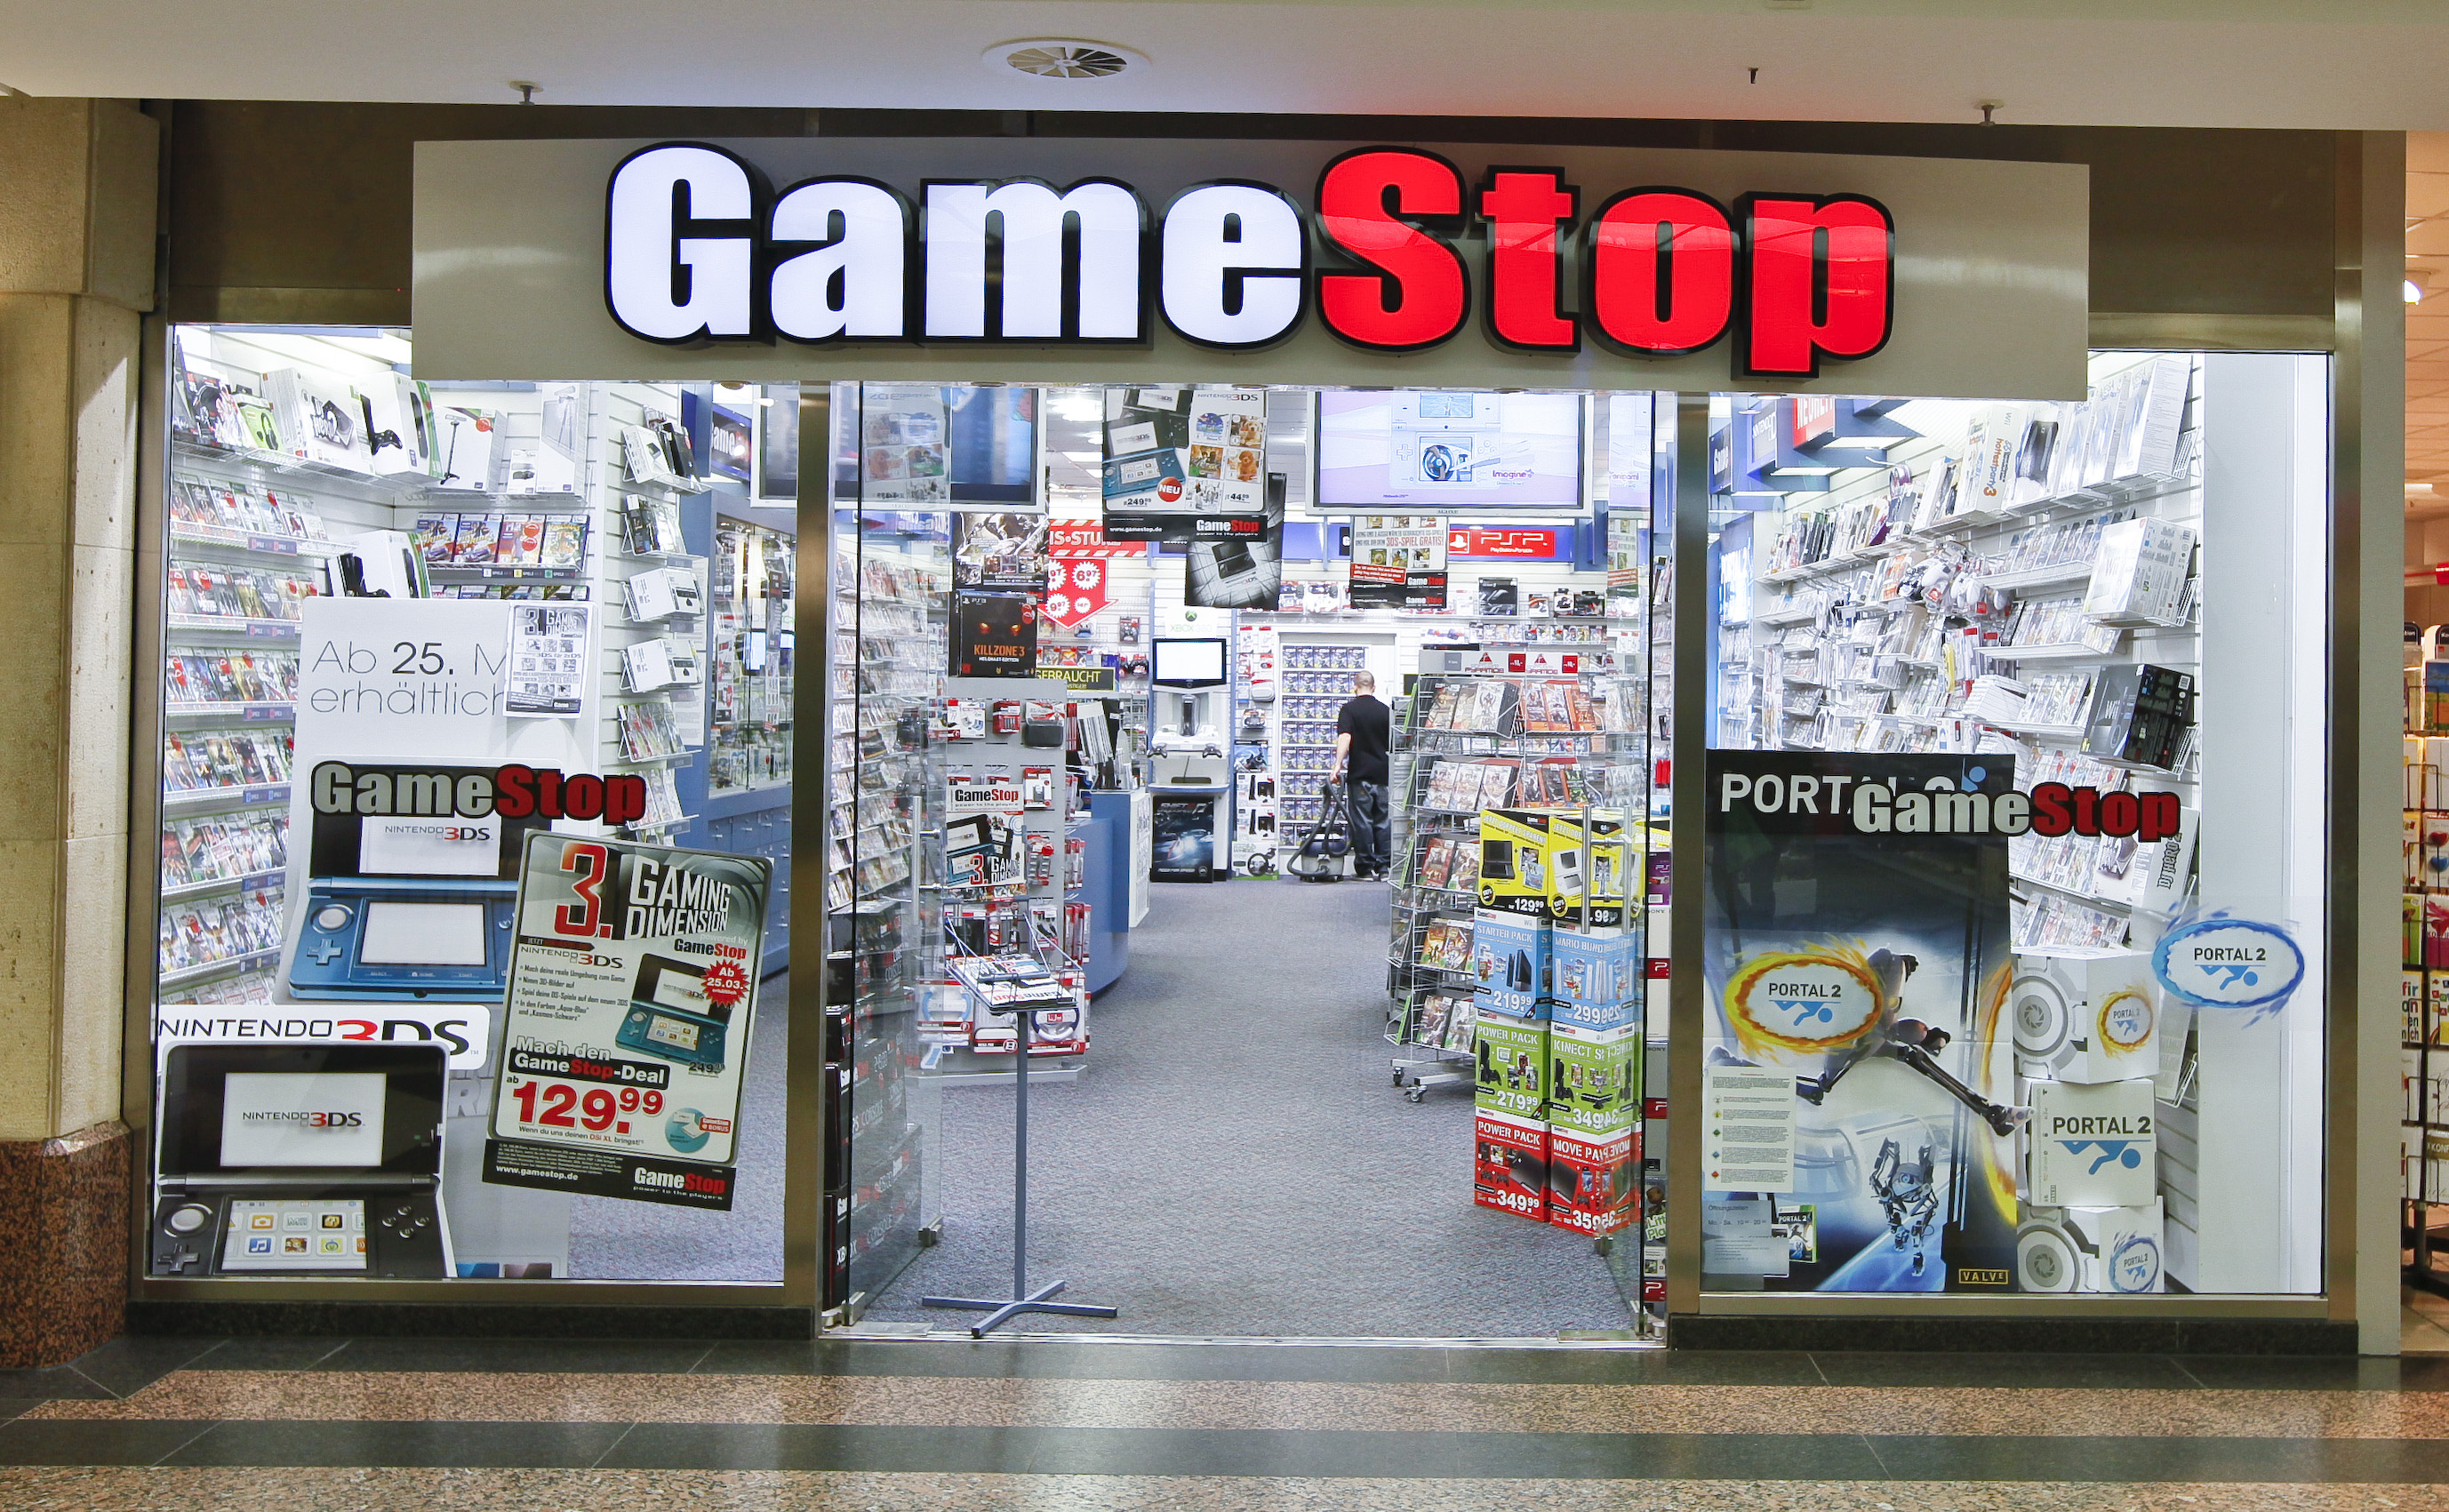 Gamestop used games for wii